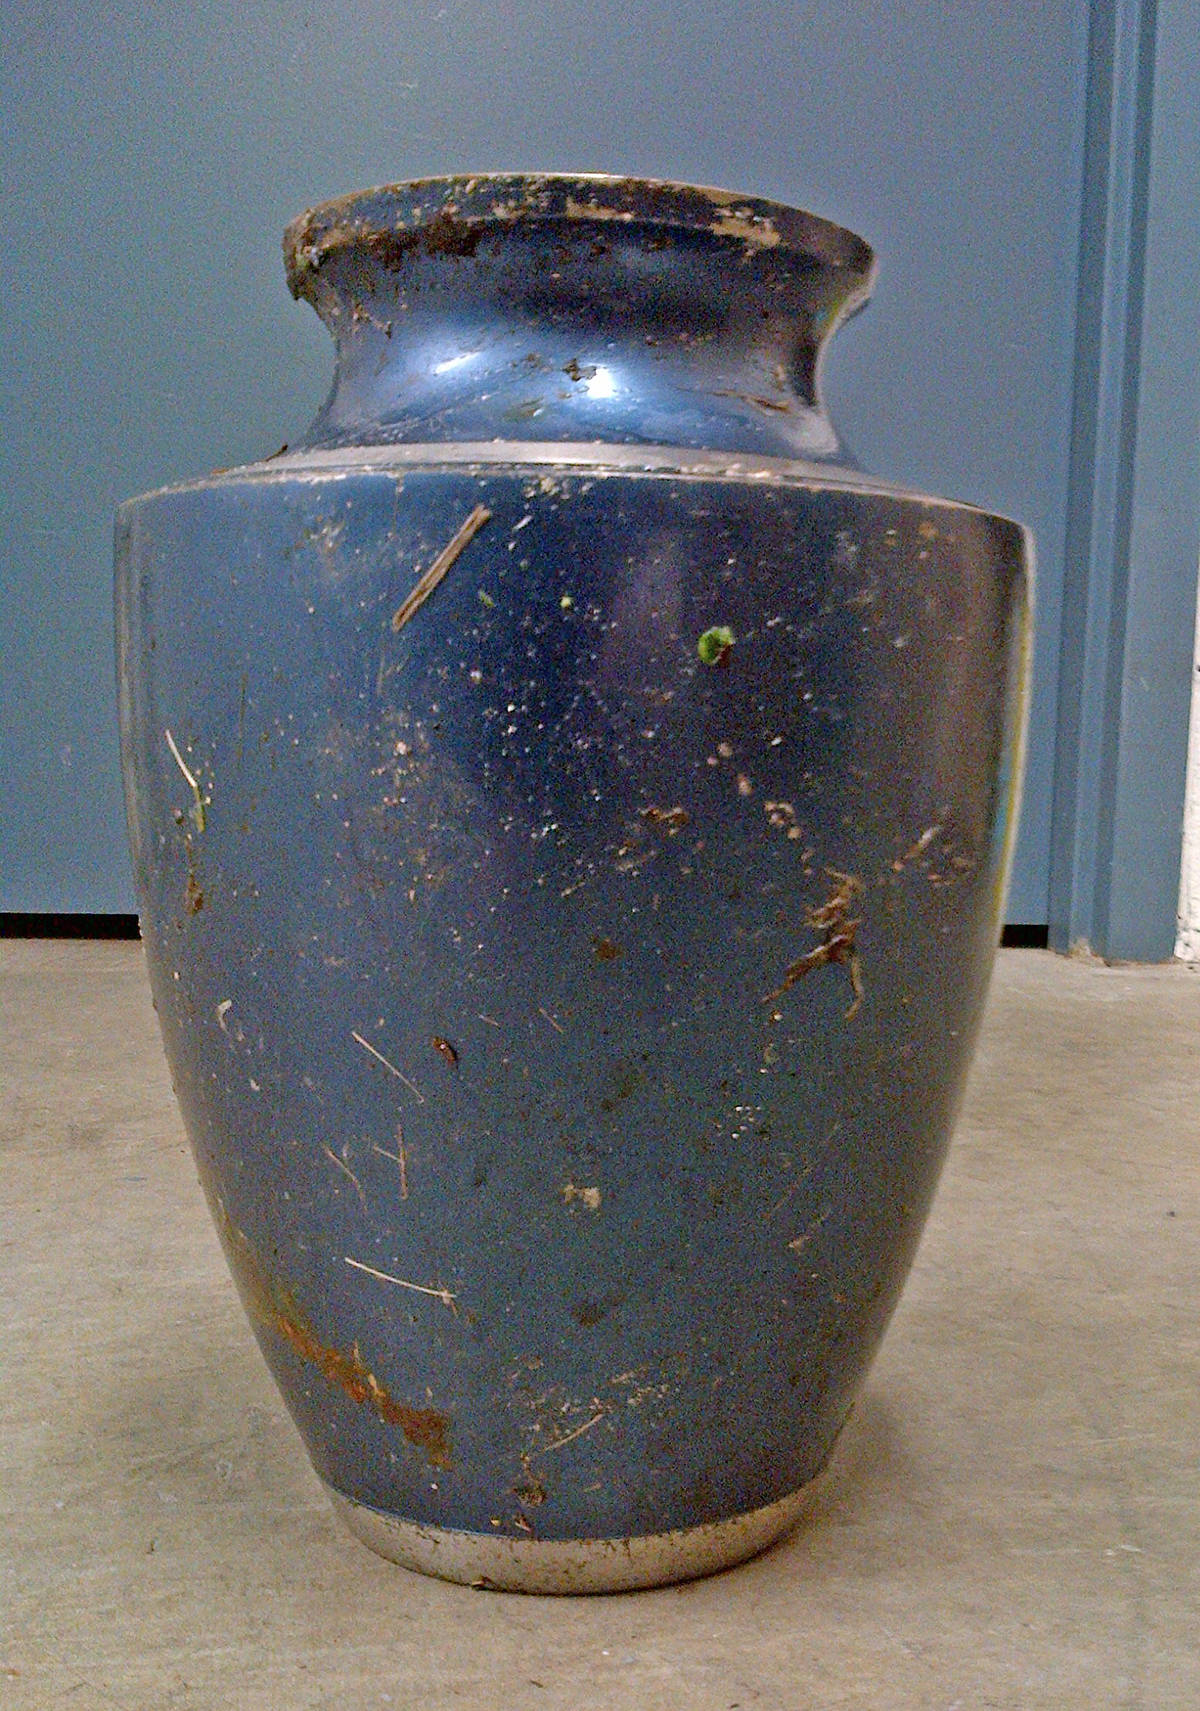 Urn found in Sidney and police looking for owner